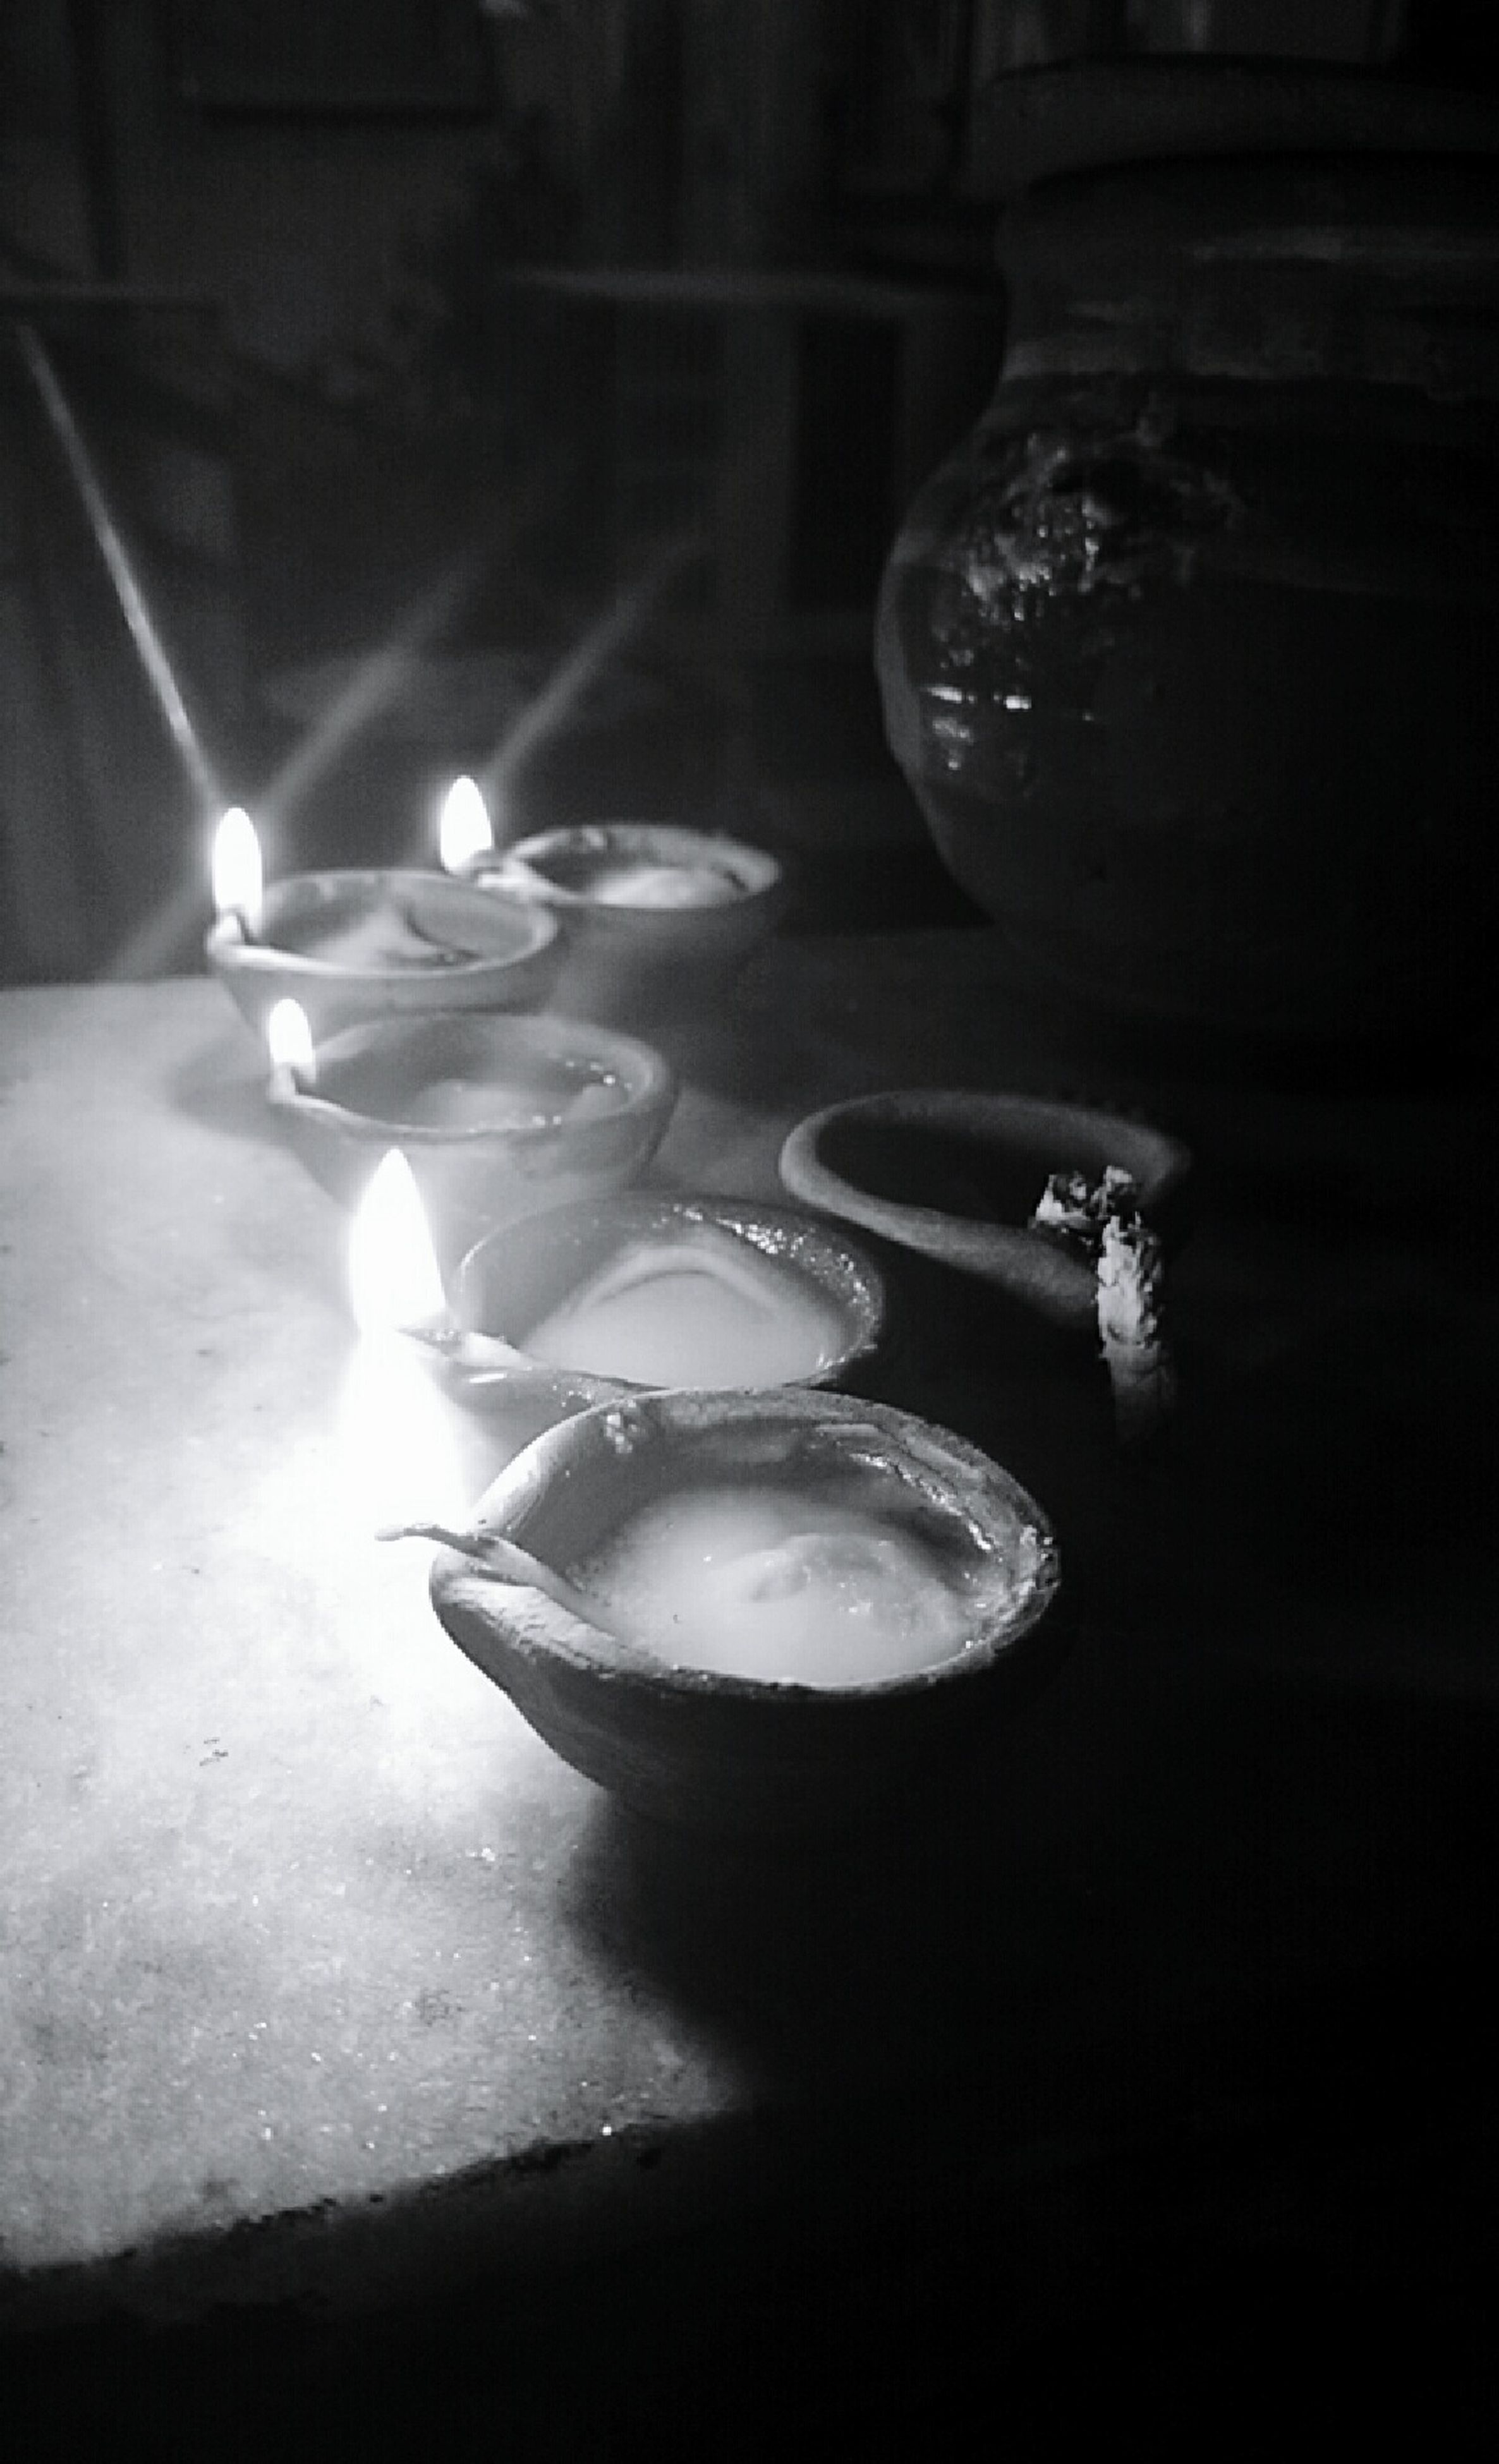 indoors, night, illuminated, burning, light - natural phenomenon, reflection, flame, dark, close-up, high angle view, candle, glass - material, glowing, unrecognizable person, men, shadow, table, lighting equipment